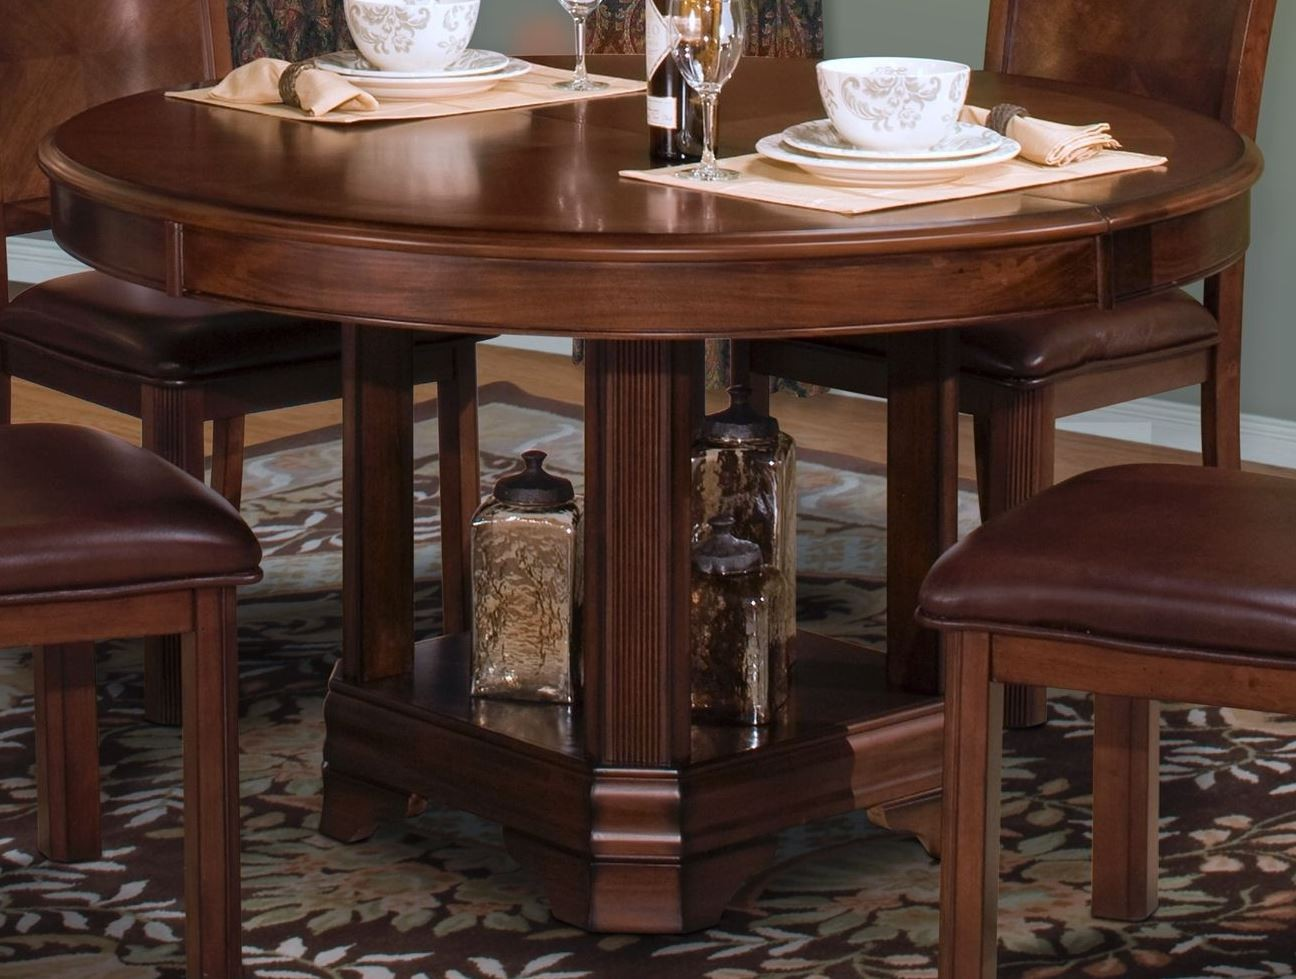 sheridan burnished cherry round dining table from new classics 40 005 18 18b coleman furniture. Black Bedroom Furniture Sets. Home Design Ideas